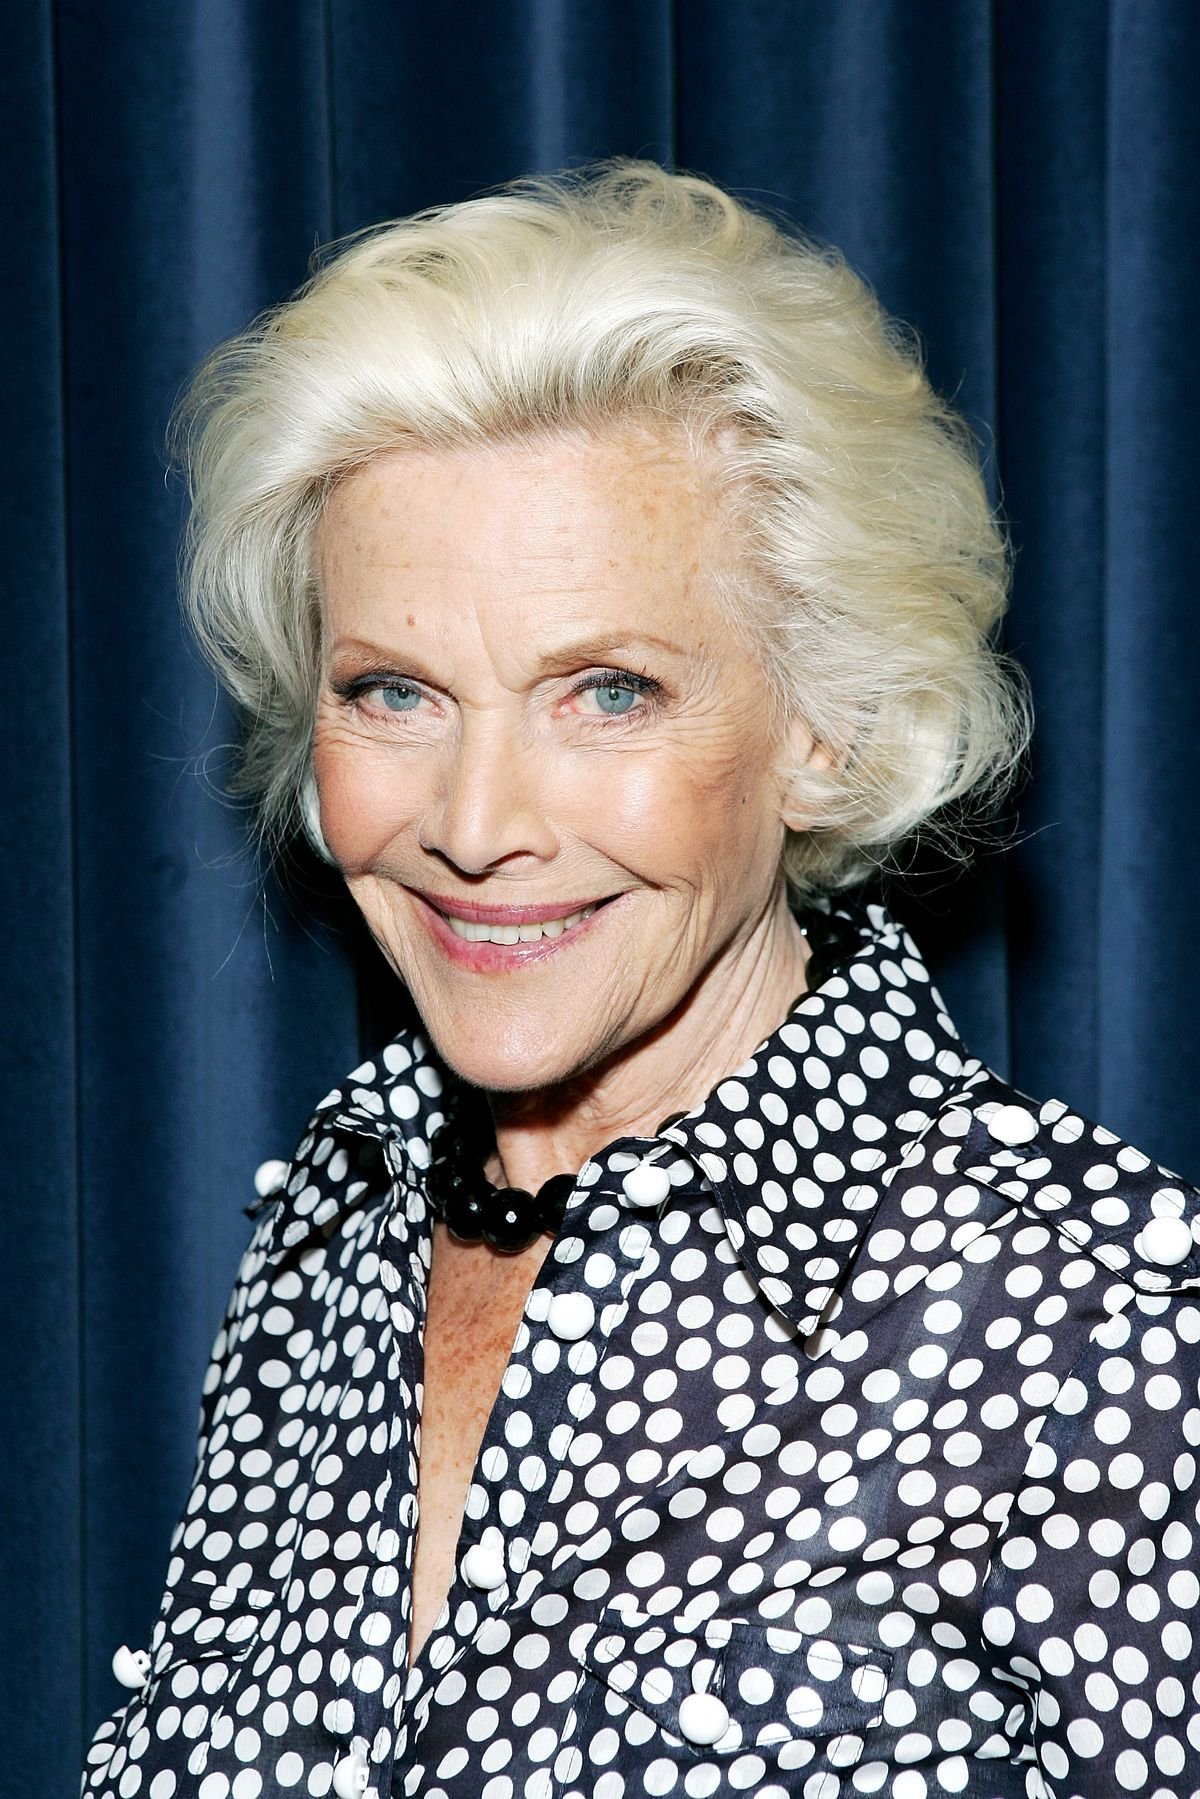 Actress and singer Honor Blackman poses for a photograph whilst recording her single 'The Star Who Fell From Grace' at Angel Studios in 2008 in London, England.